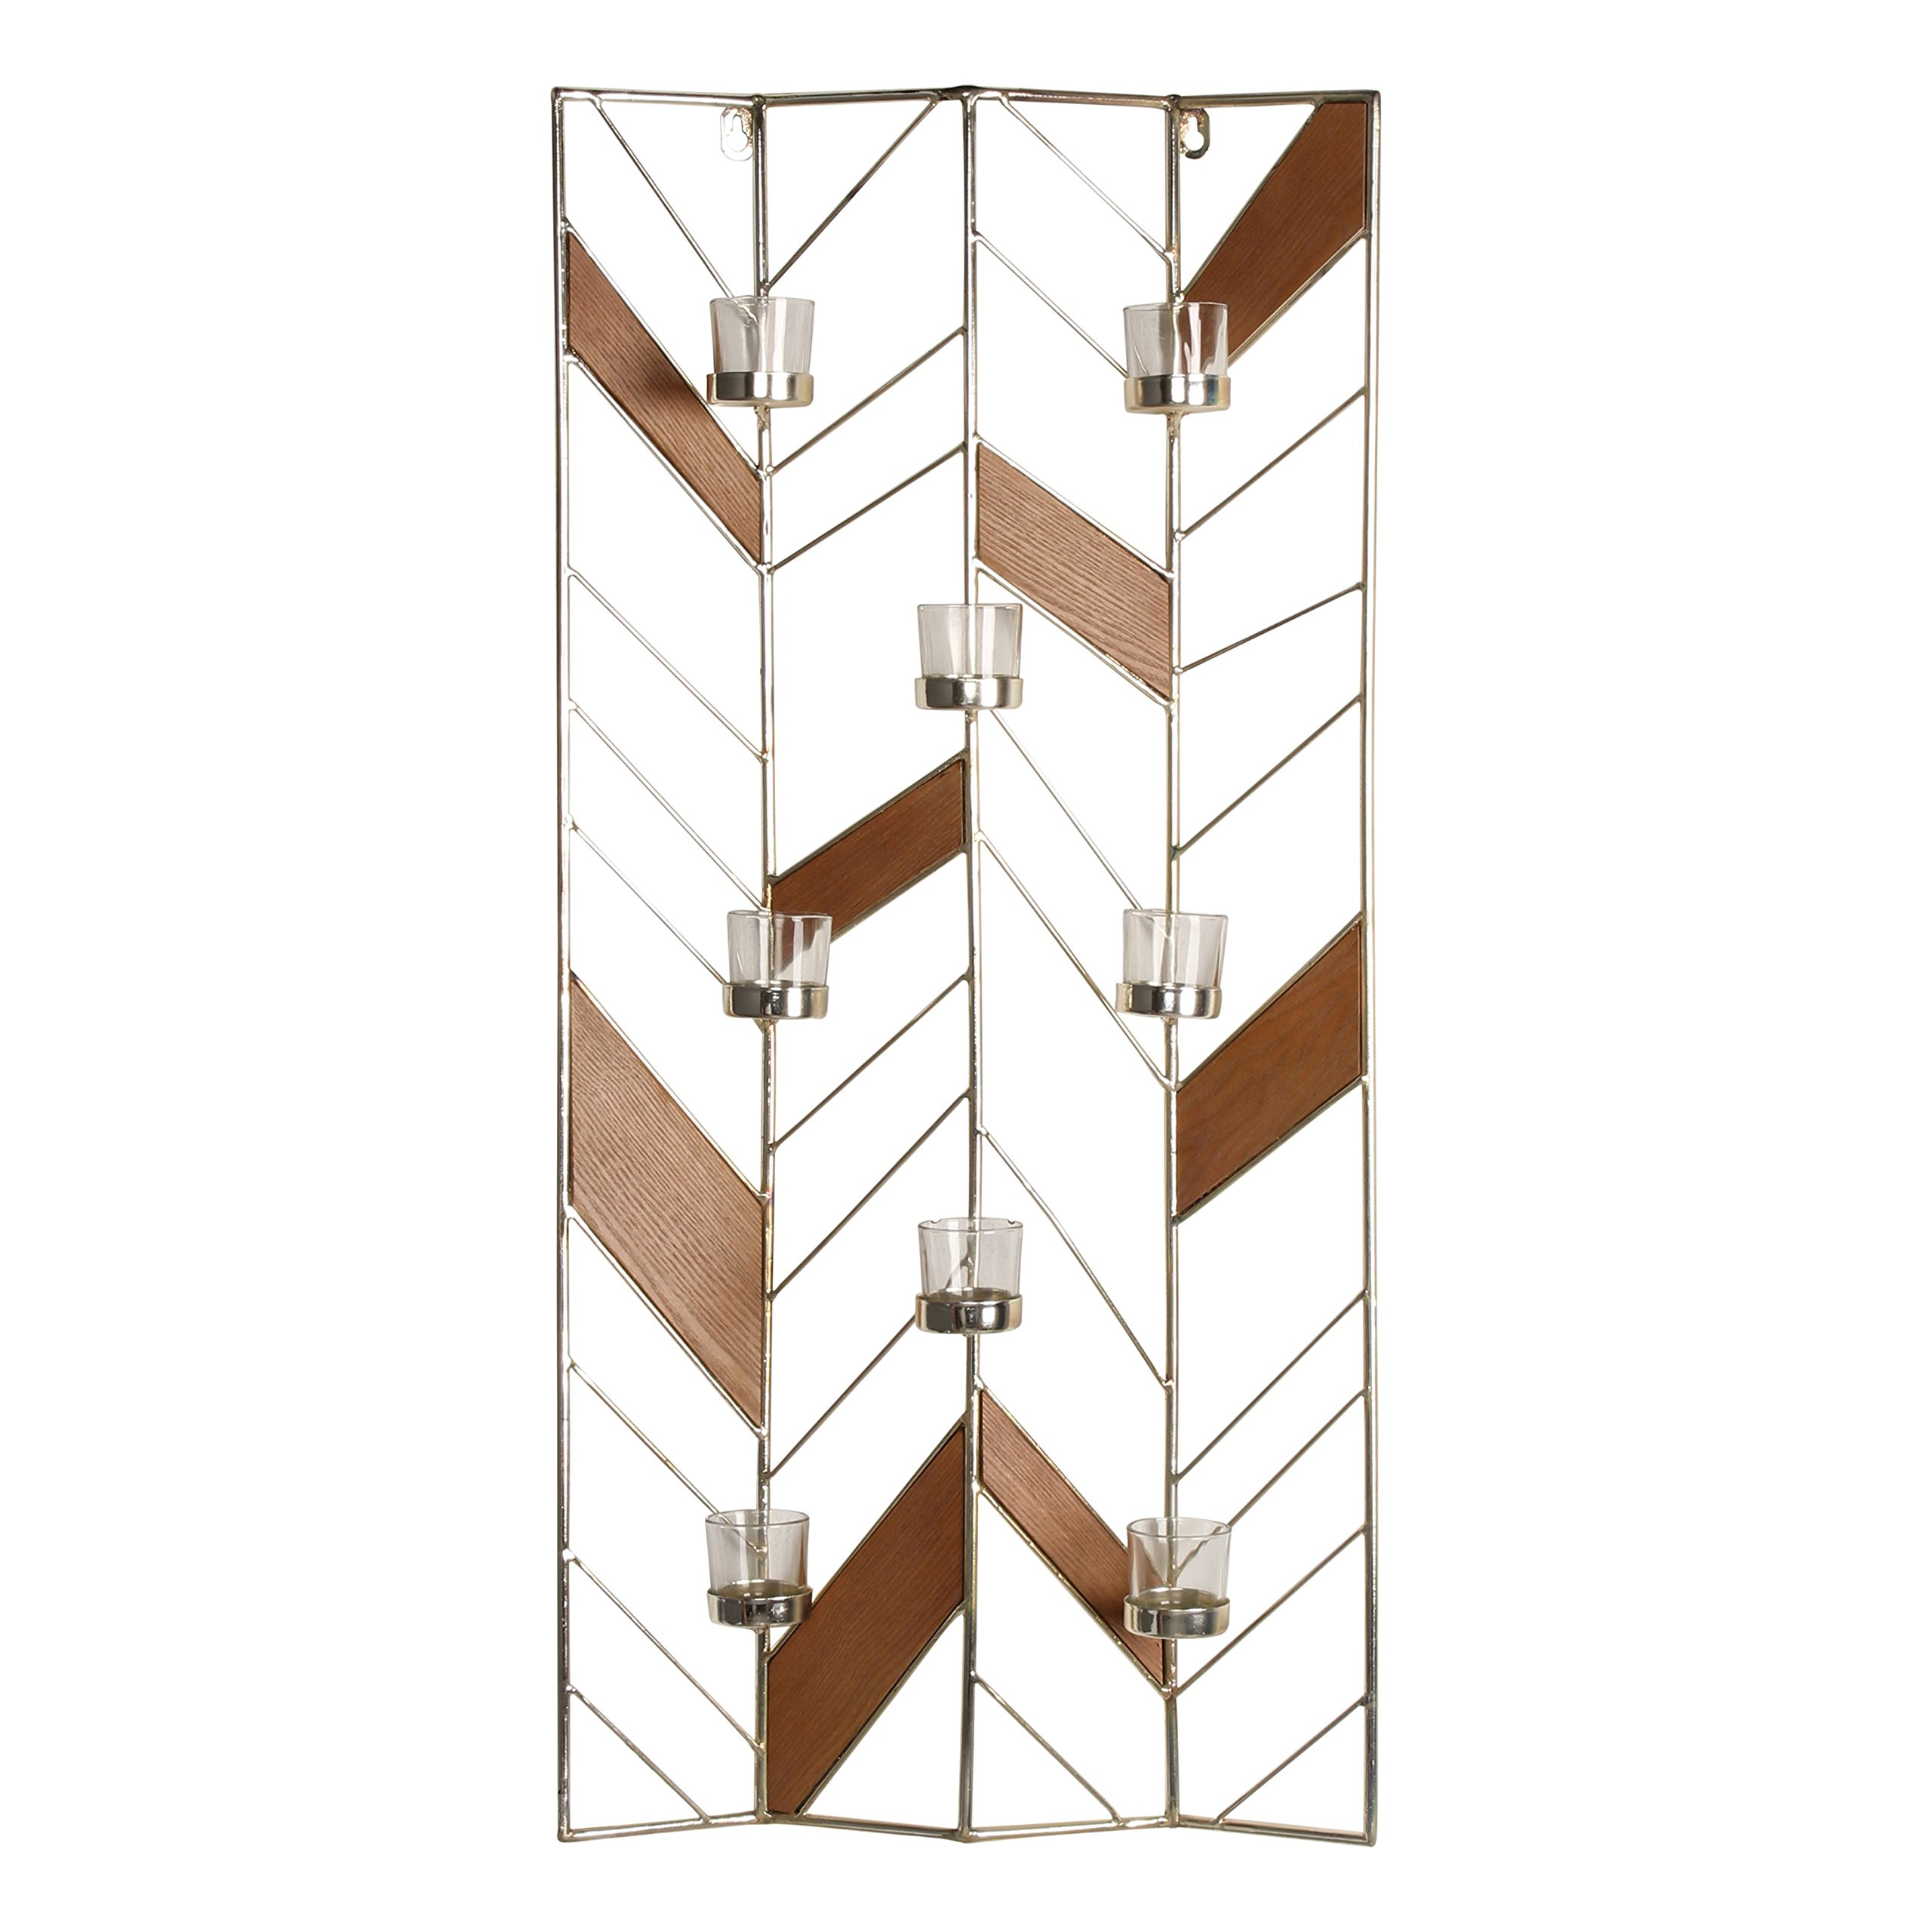 Kate and Laurel Elettra Metal and Wood Tea Light Candle Holder Wall Sconce, Gold